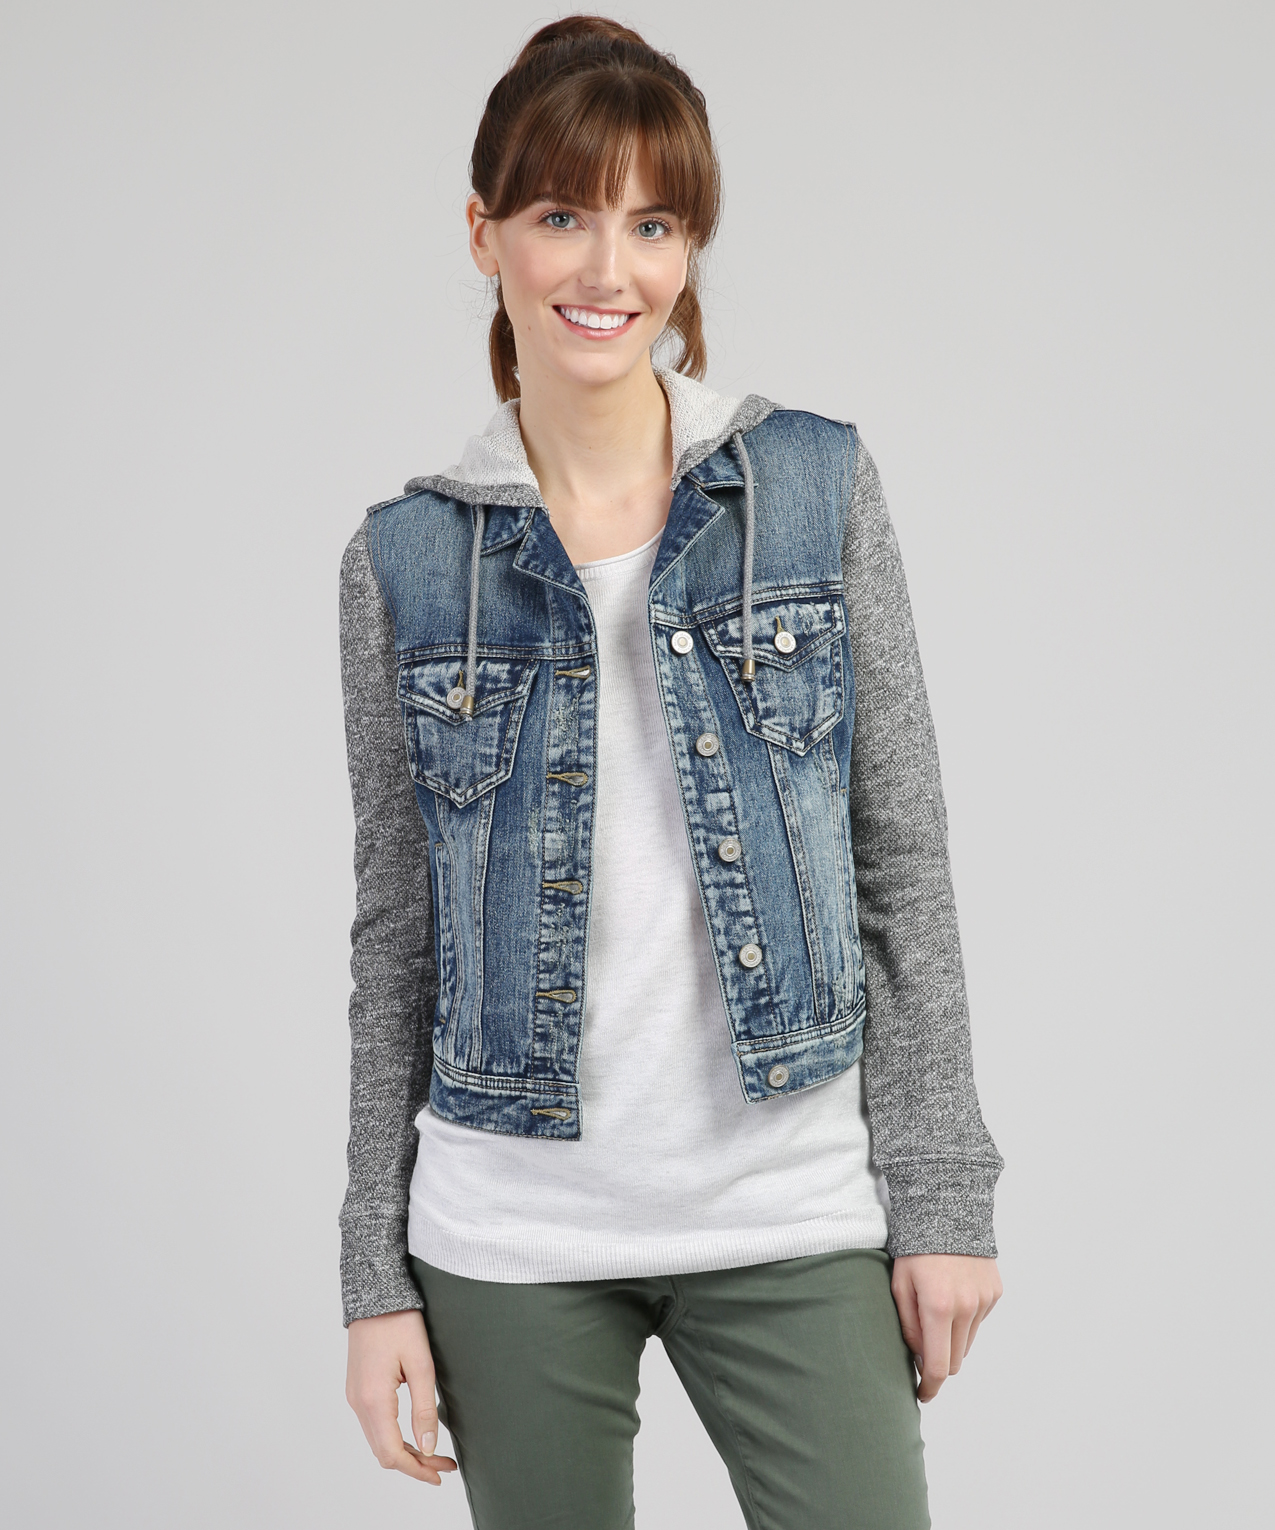 c9c6be6d4b3da4 knit denim jacket